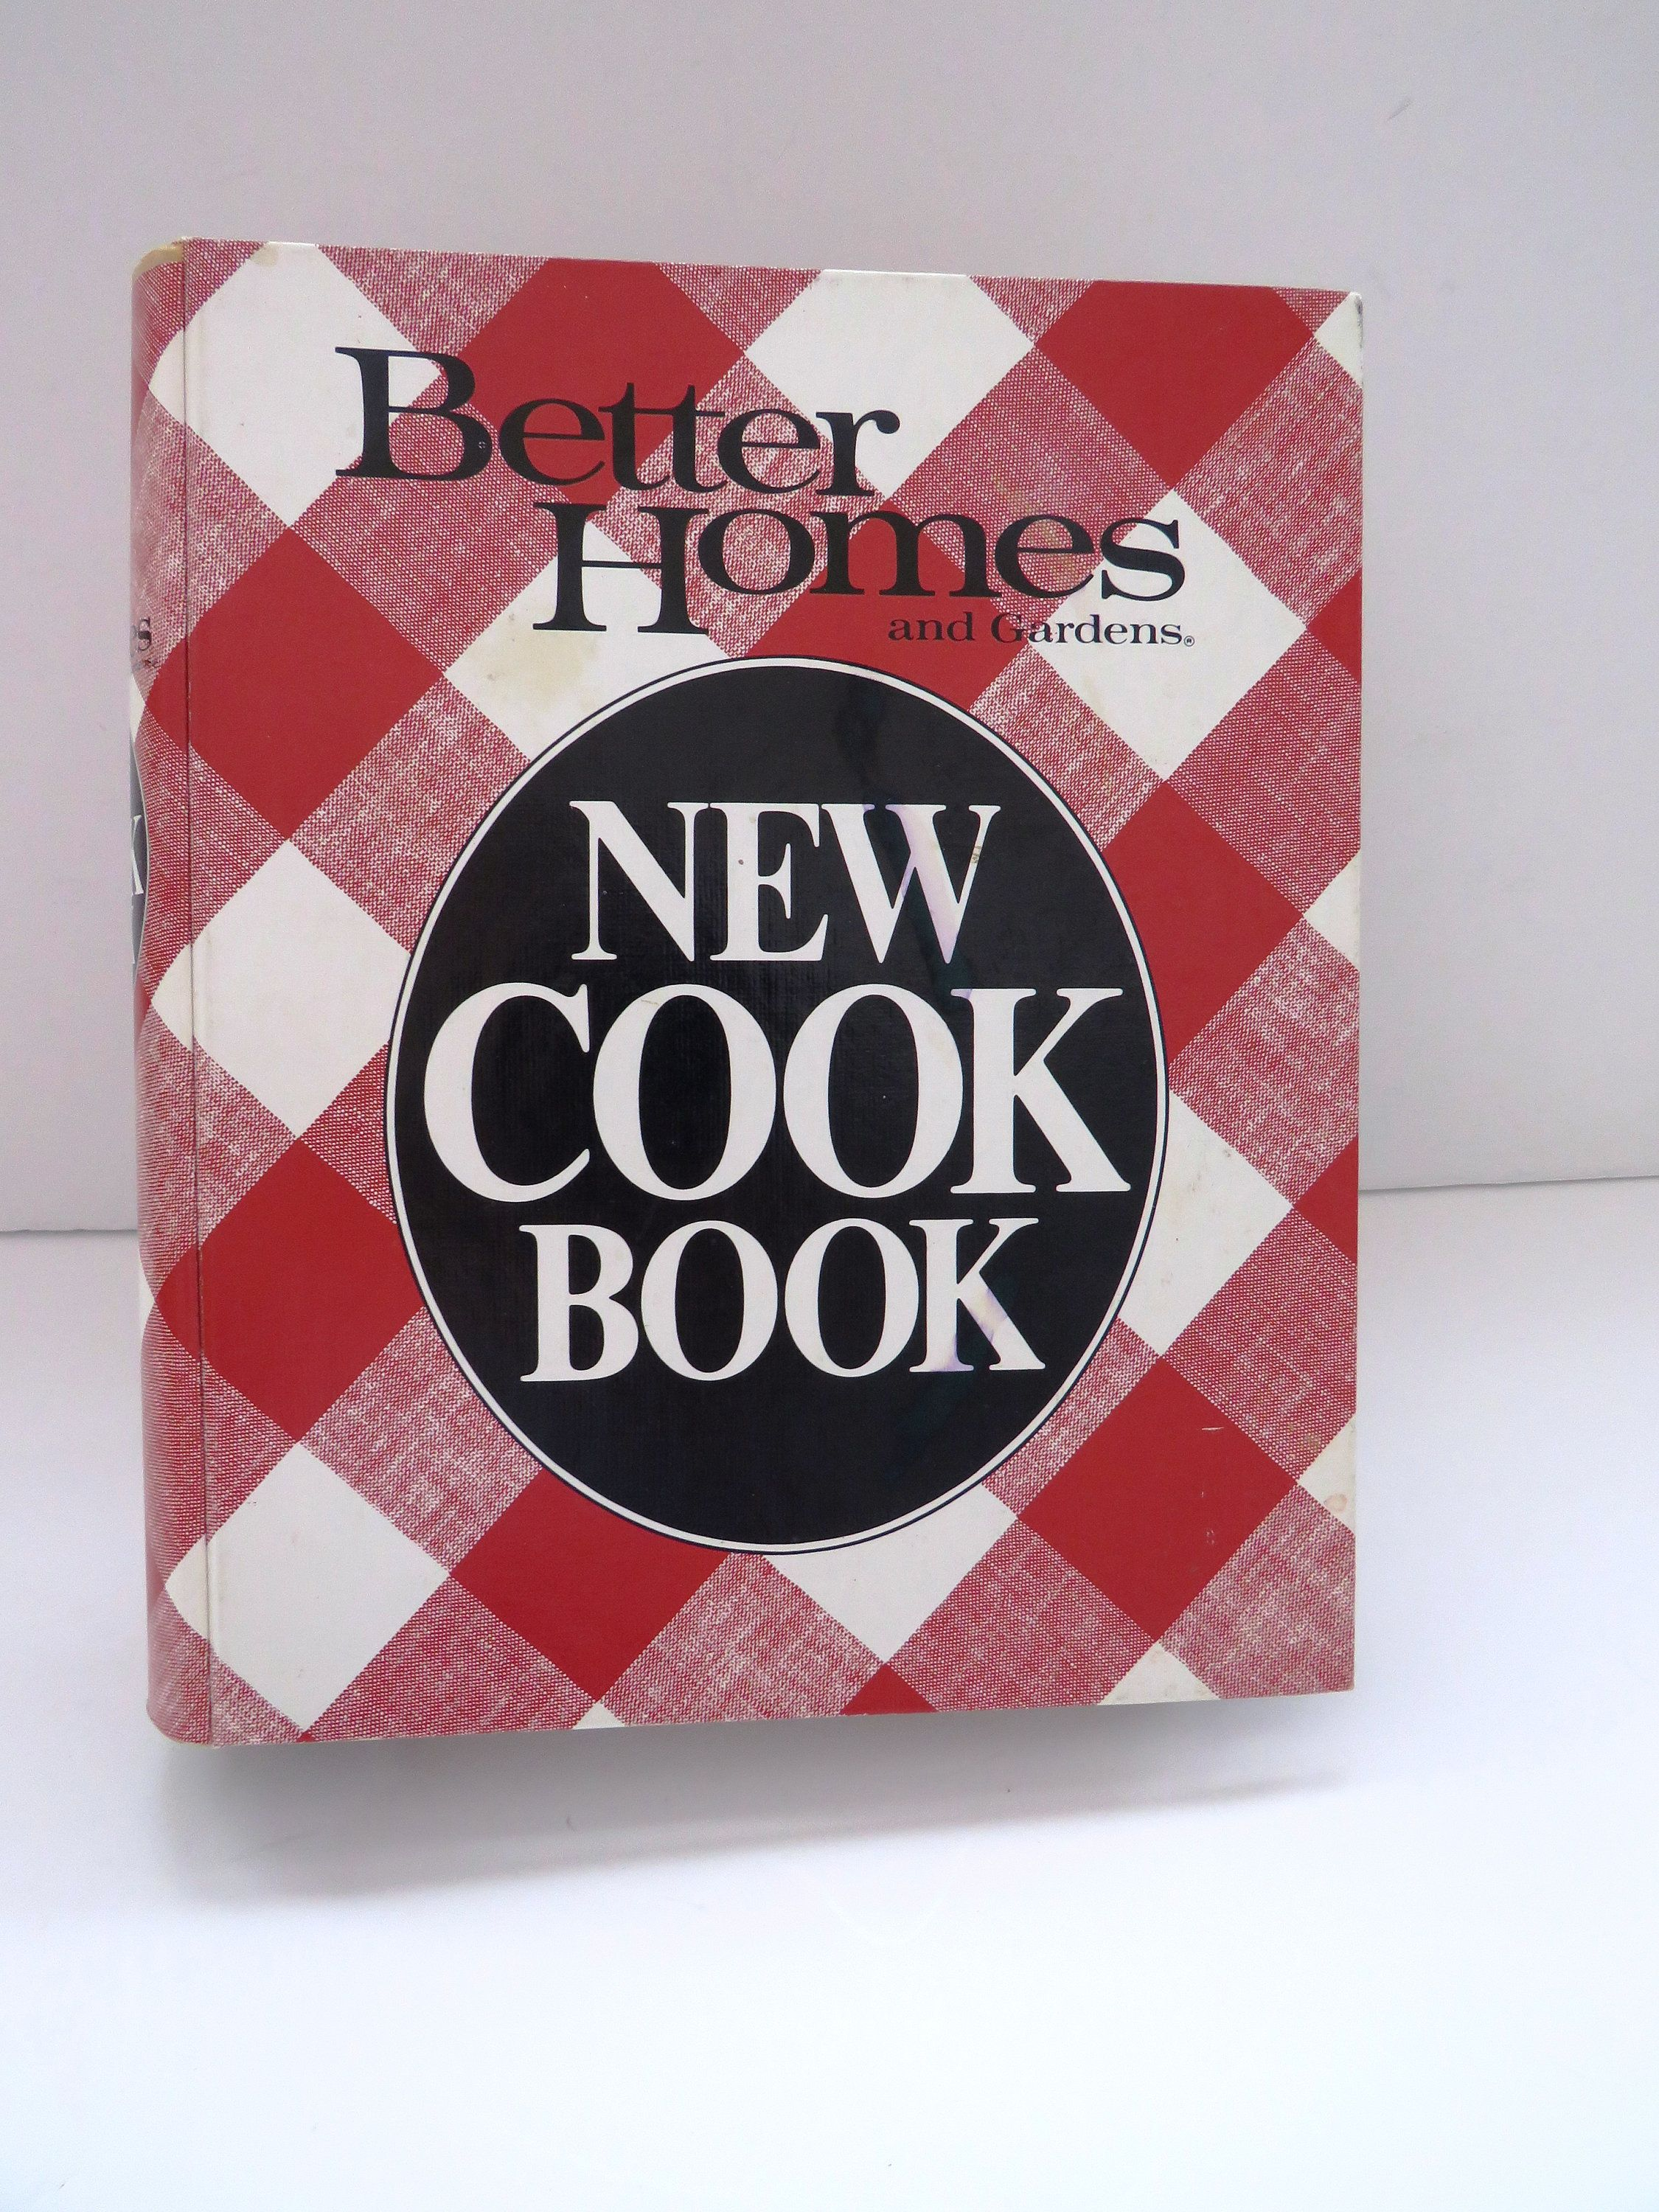 262aa4064144564d388c11dbbb456d04 - Better Homes And Gardens Red And White Cookbook